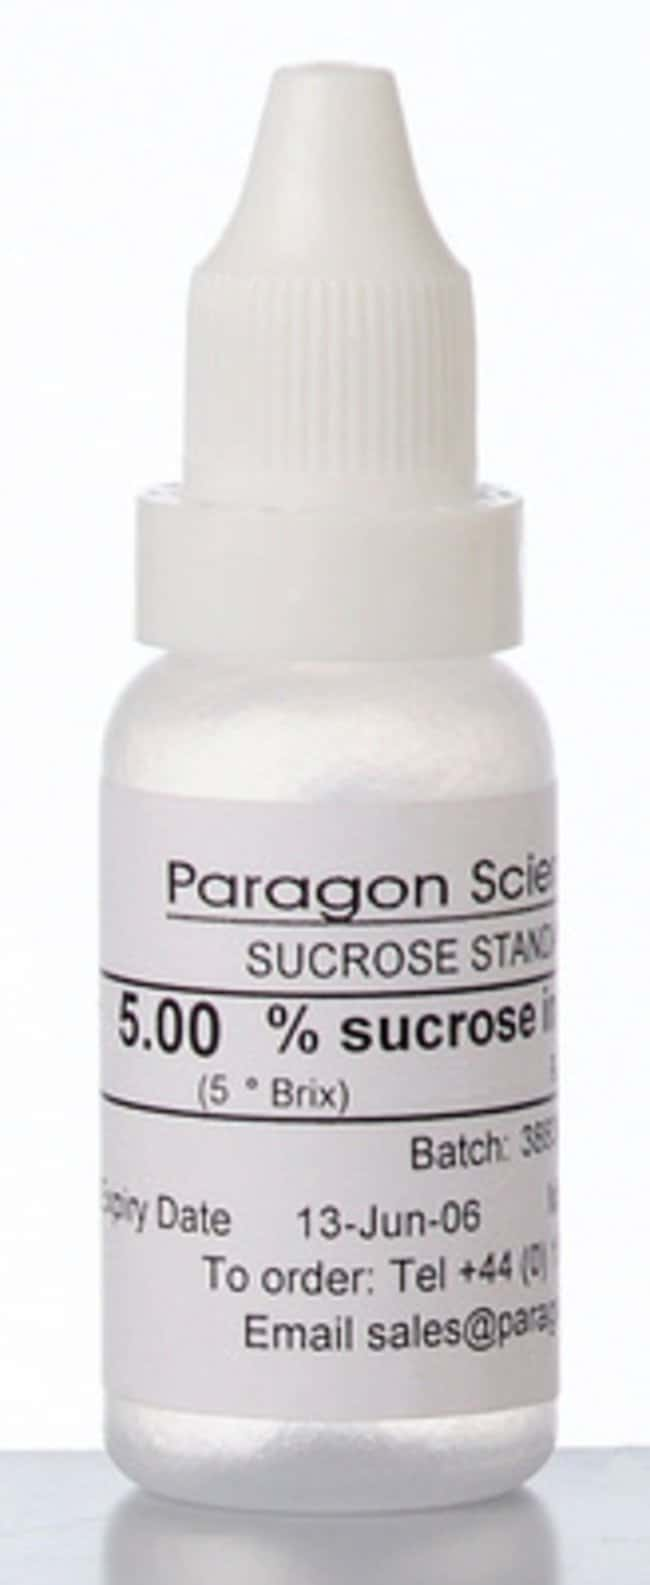 Paragon Scientific Sucrose Brix/RI Standards 60.00 Brix Paragon Scientific Sucrose Brix/RI Standards